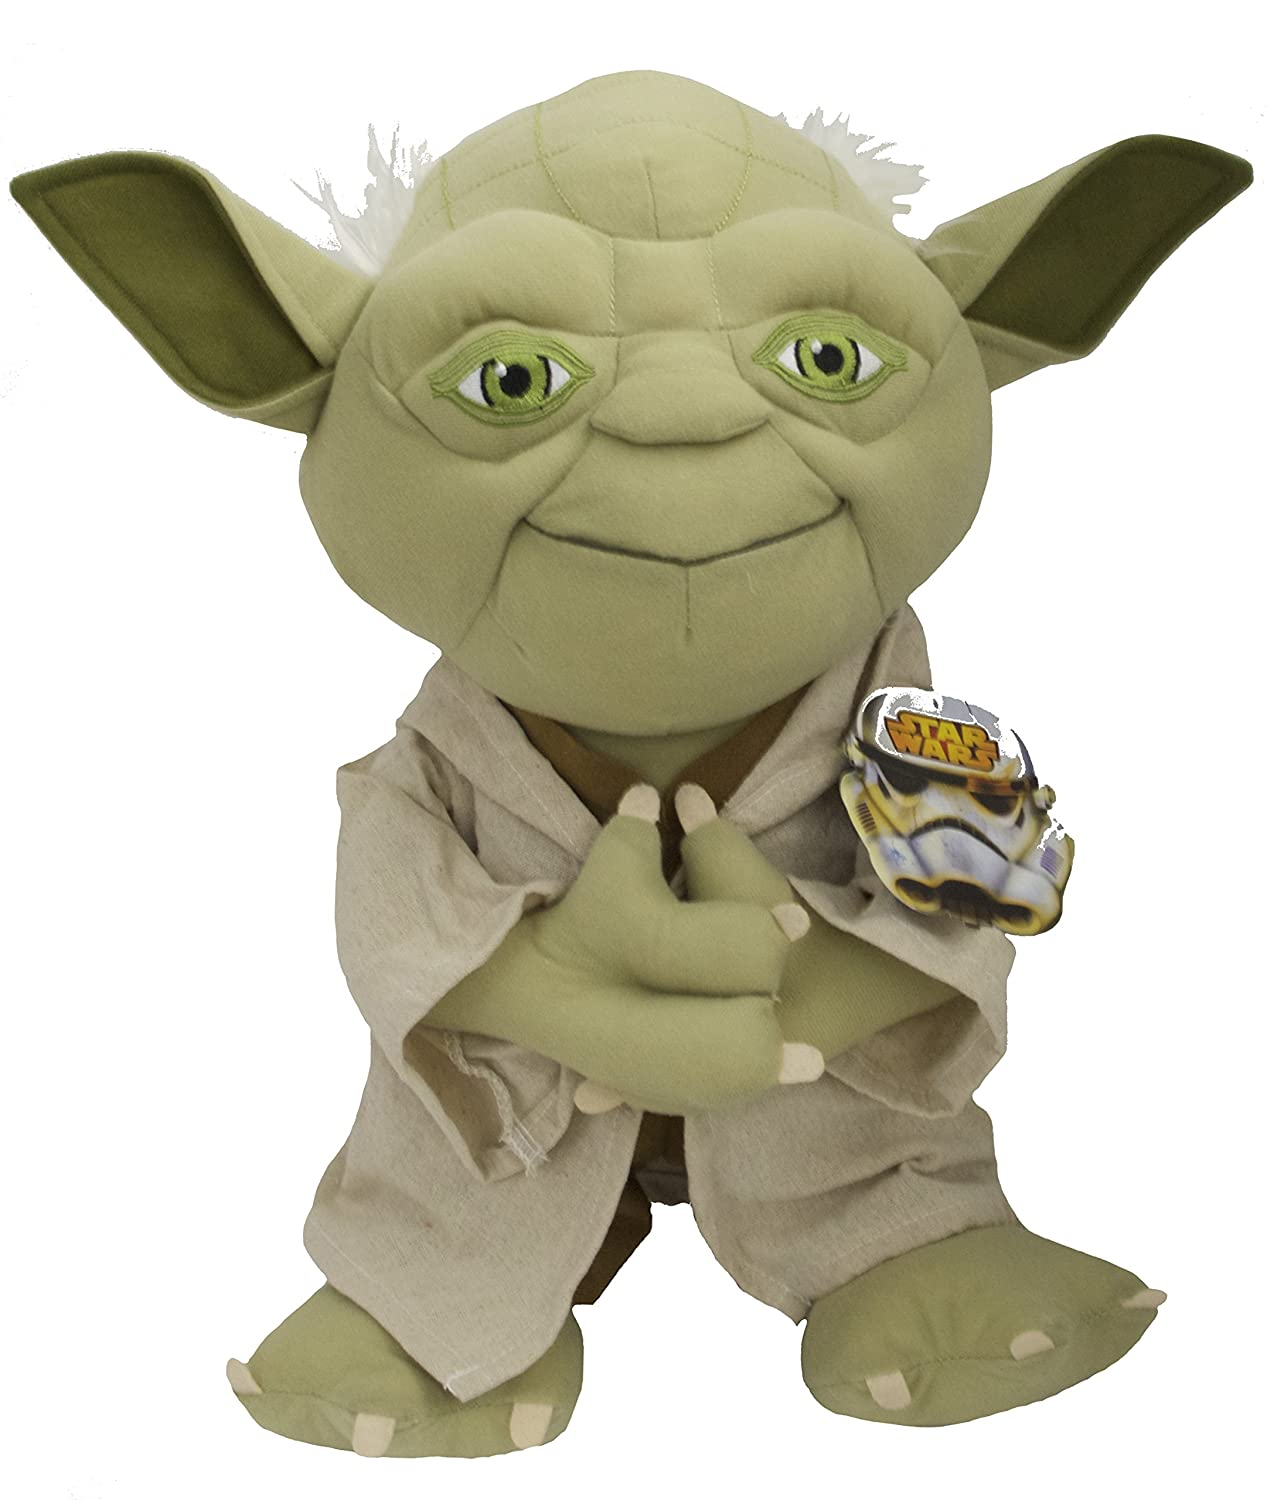 Star Wars Yoda Pillowtime Pal Soft and Cuddly sleeping pillow buddy